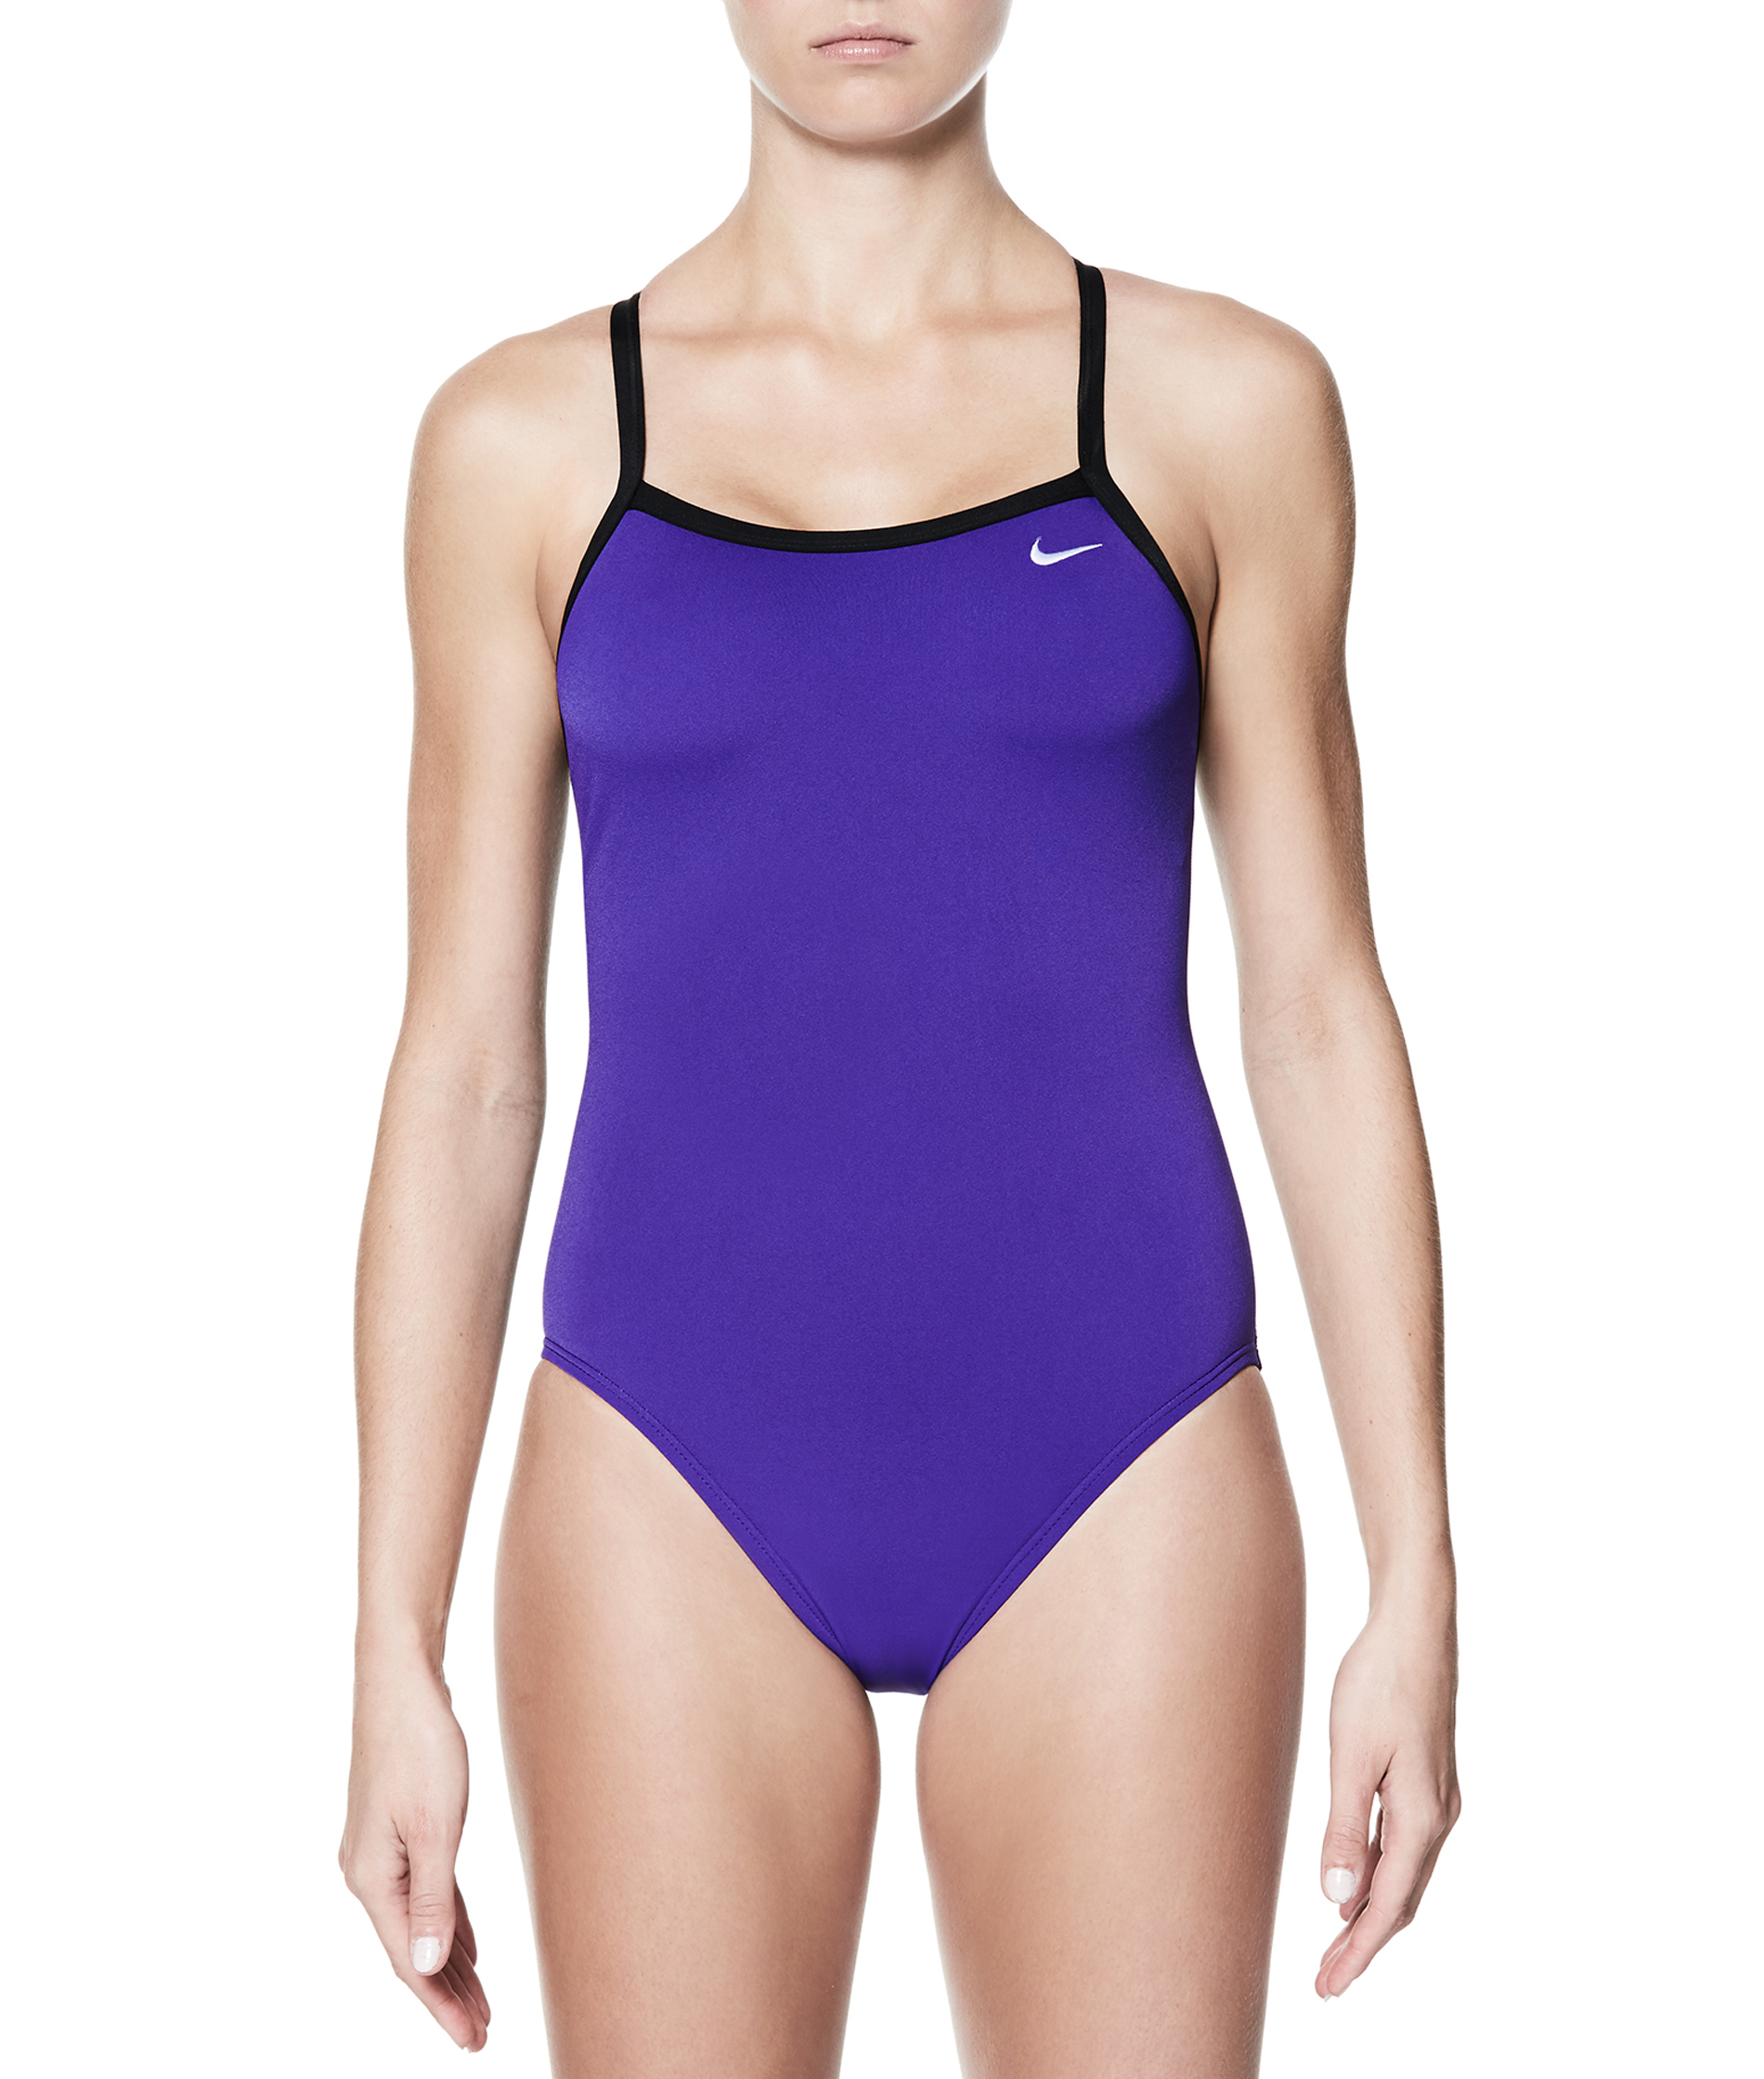 Nike Swim Nylon Solid Racerback One Piece swimsuit - Court Purple